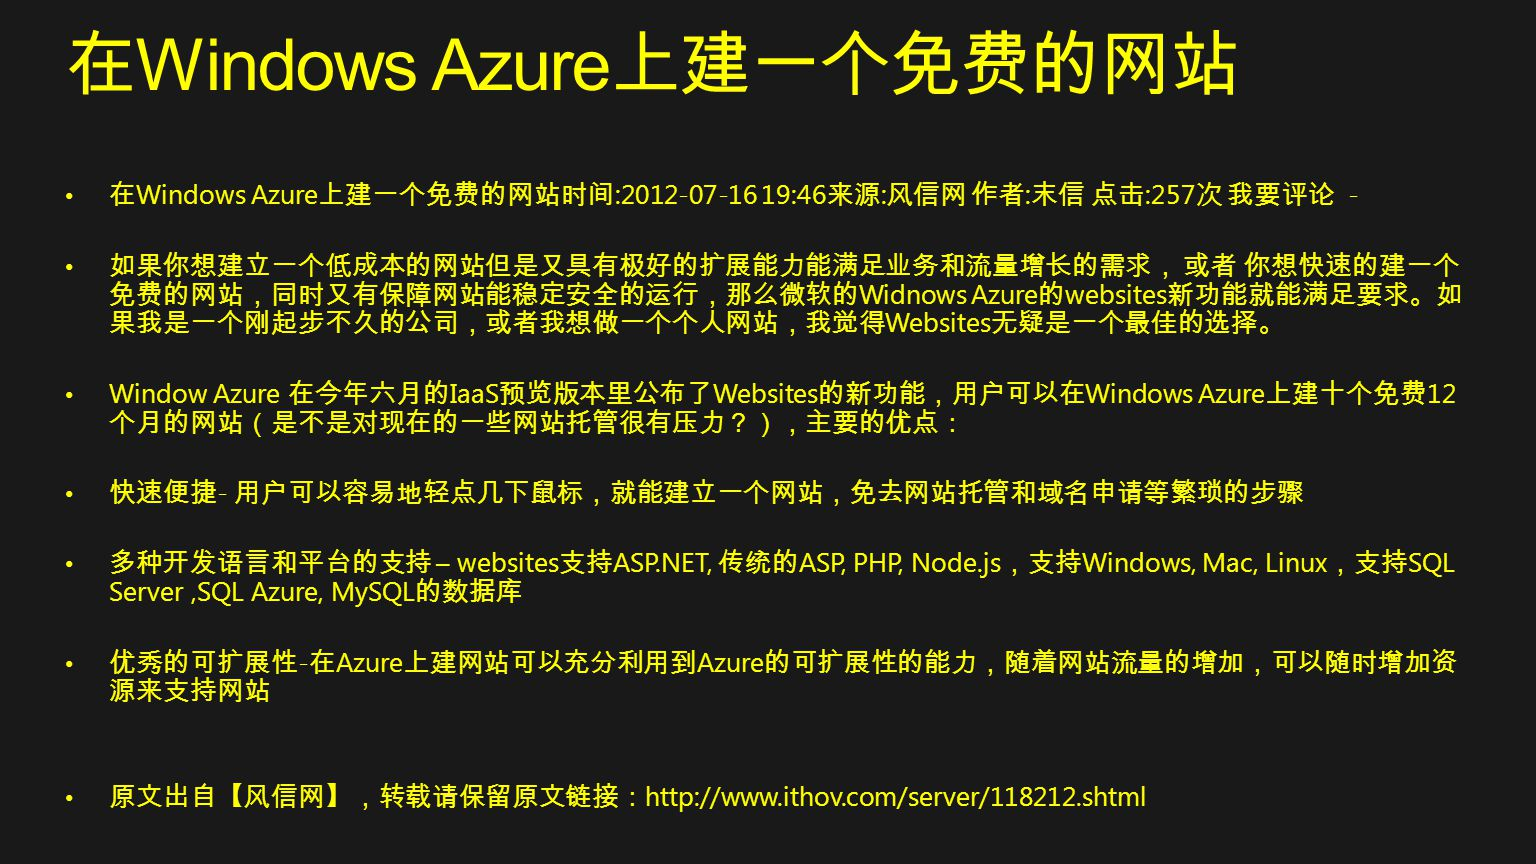 Windows Azure Windows Azure :2012-07-16 19:46 : : :257 - Widnows Azure websites Websites Window Azure IaaS Websites Windows Azure 12 - – websites ASP.